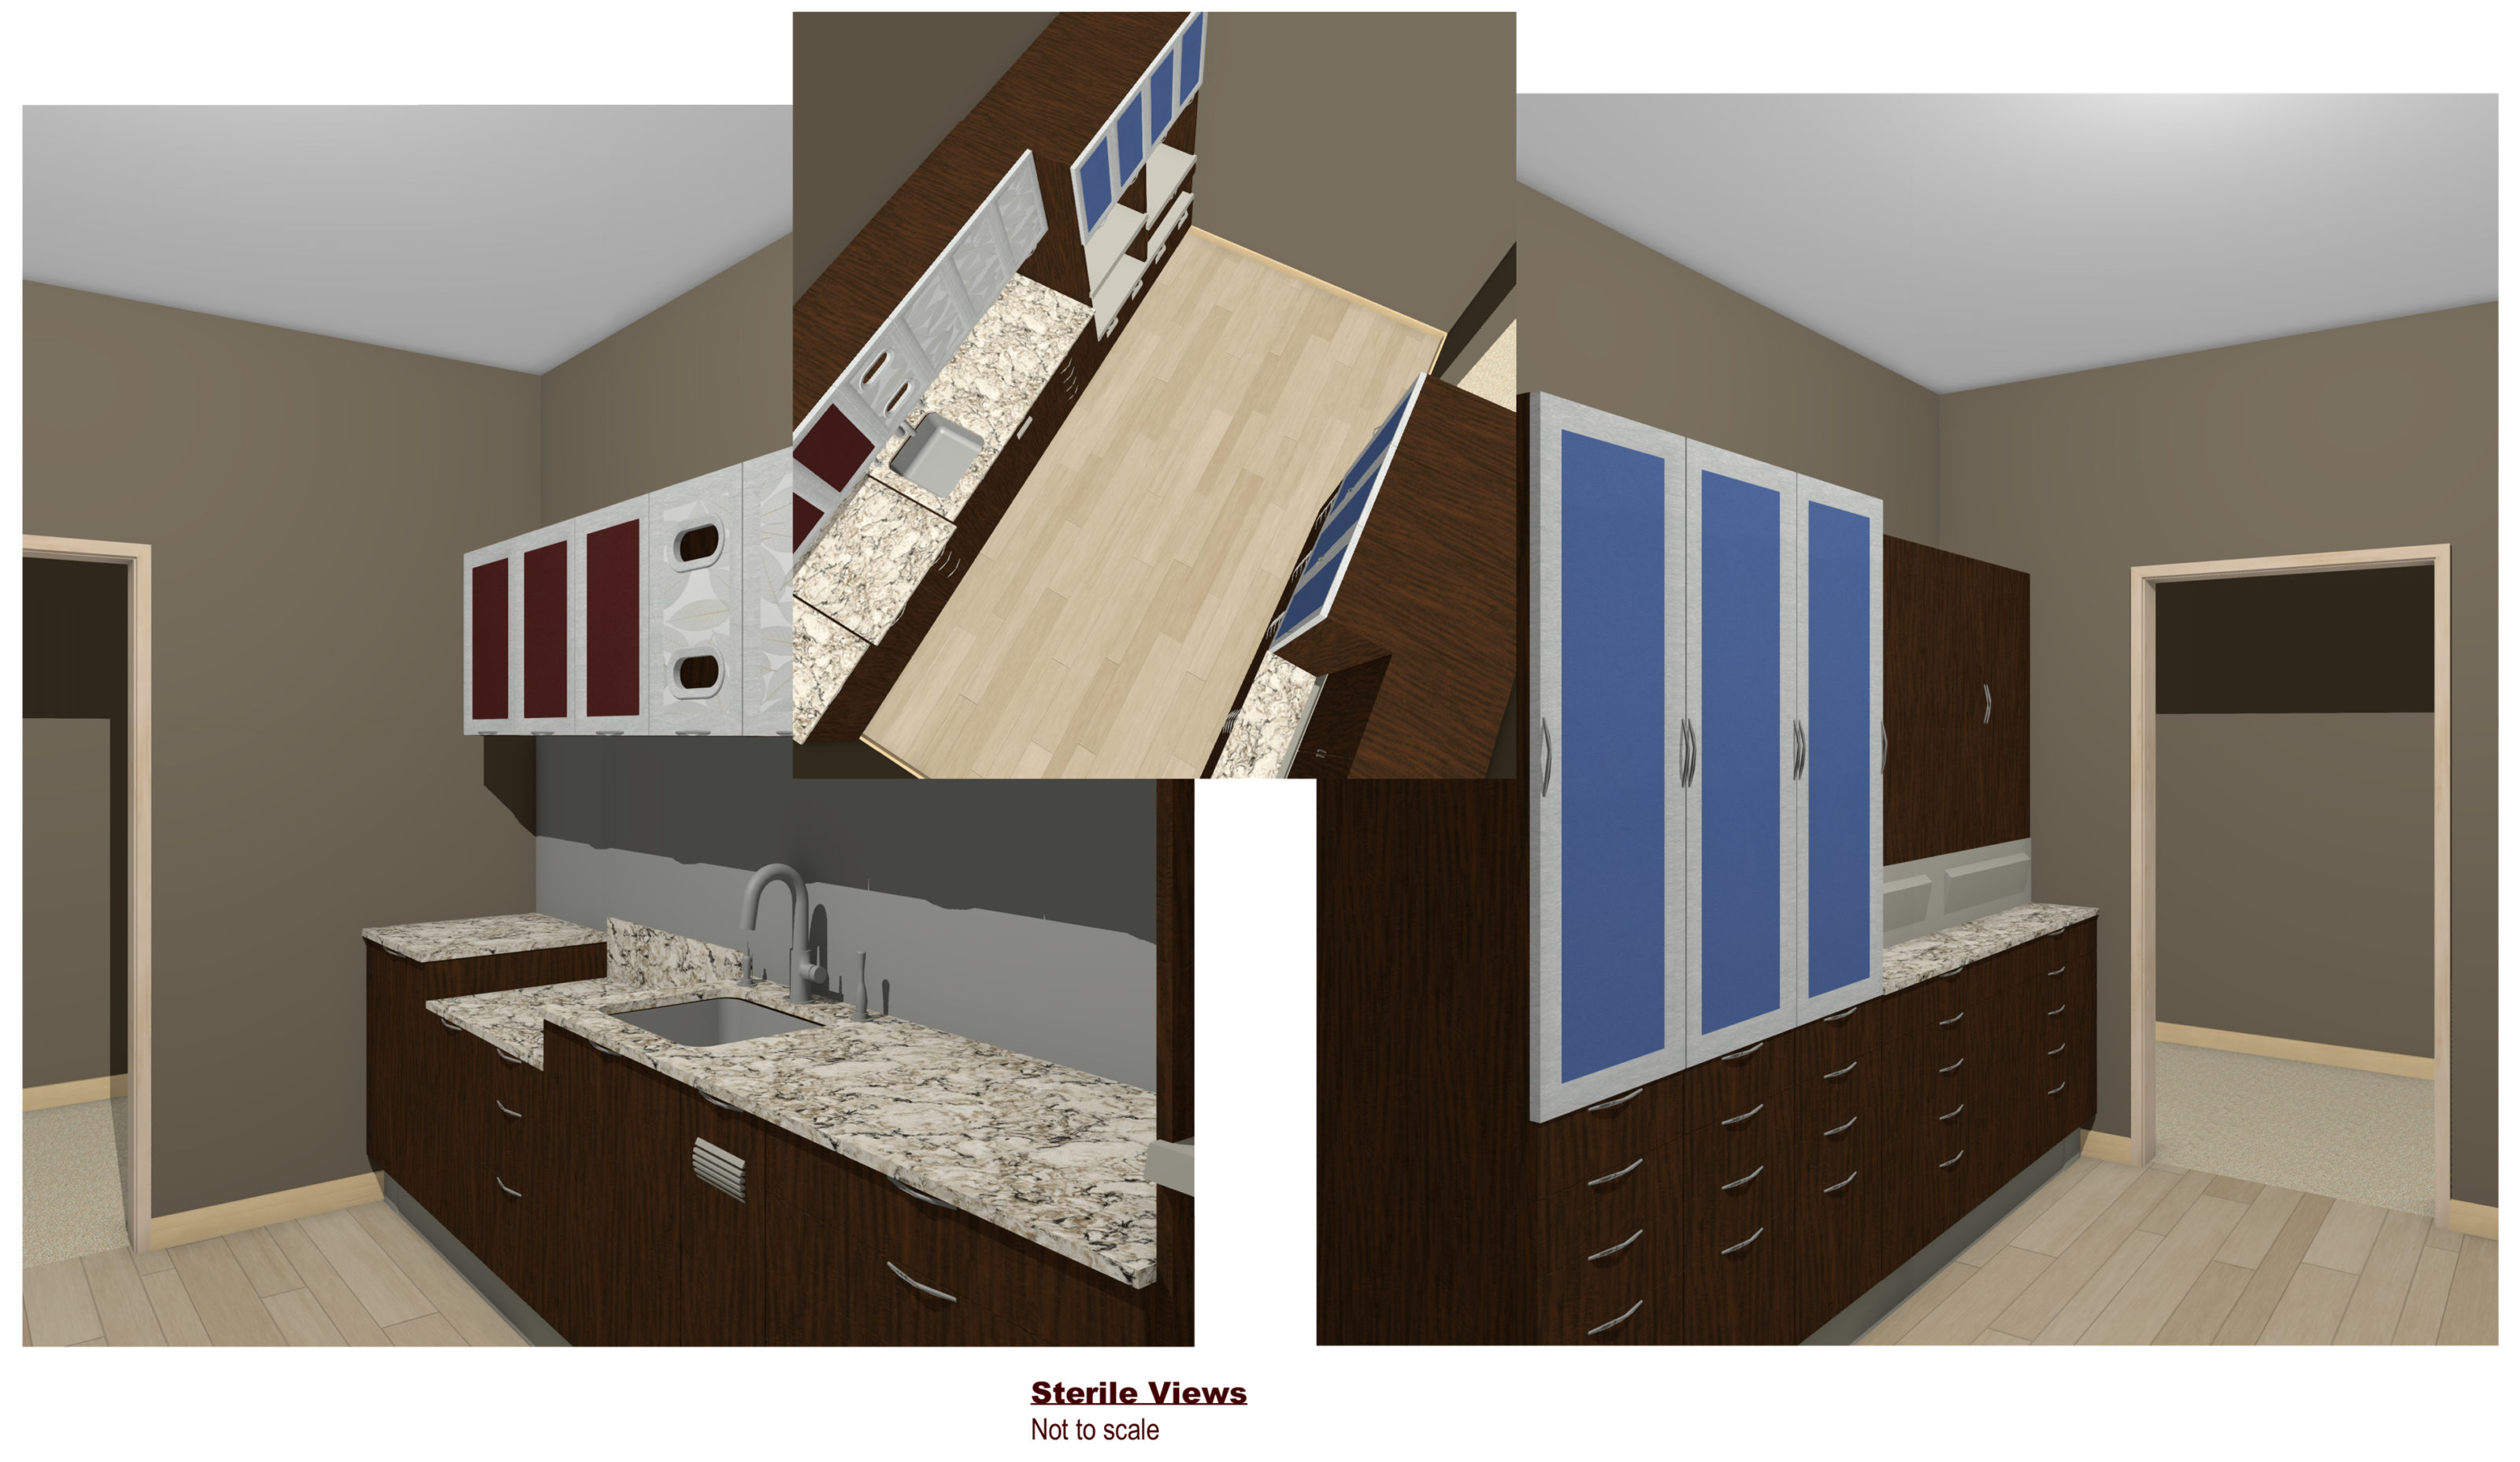 Gallatin Valley dental office design 3D renderings – sterile views